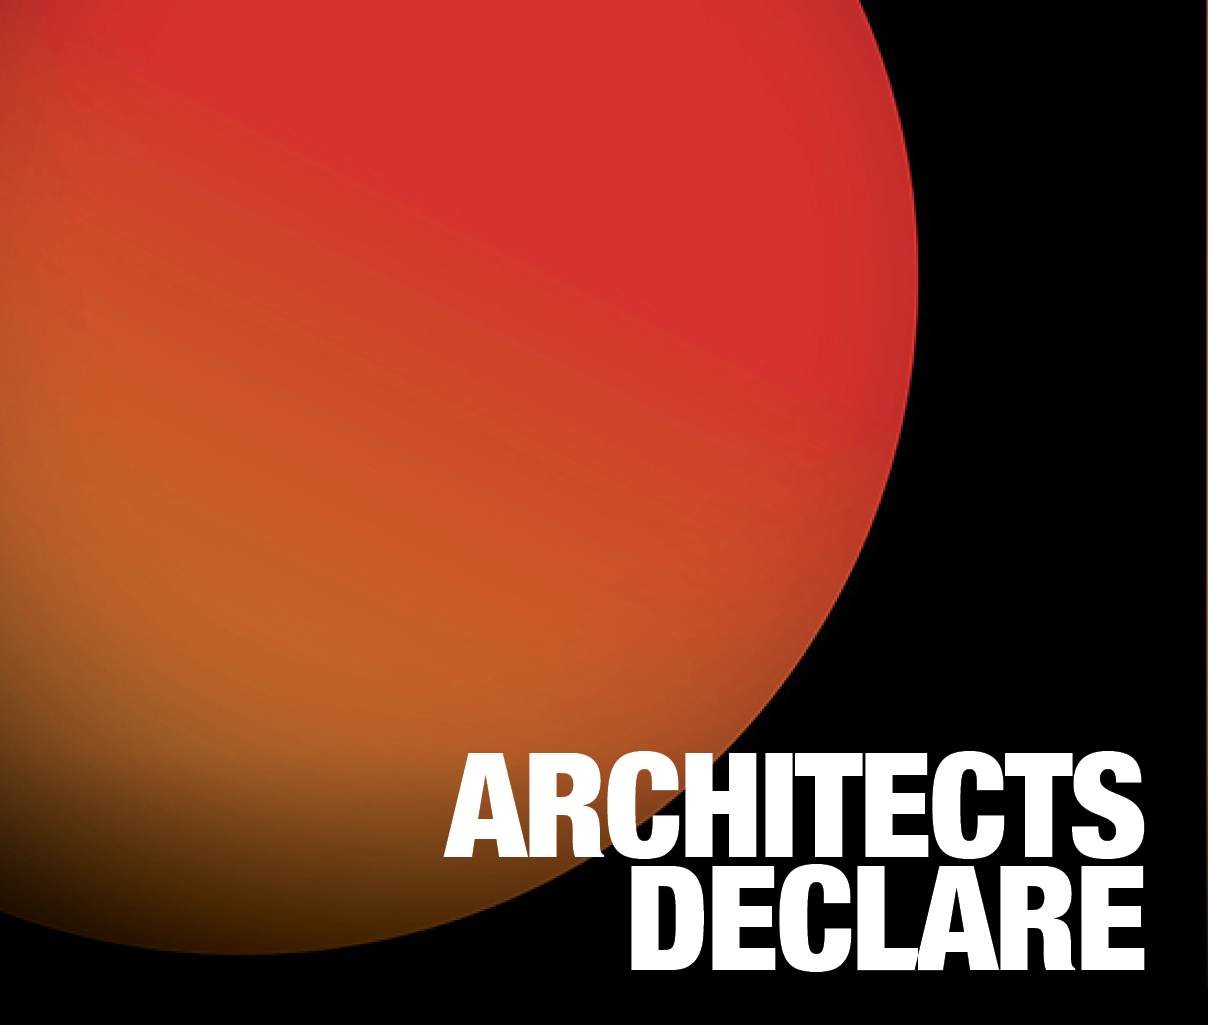 Image from the Australian Association of Architects